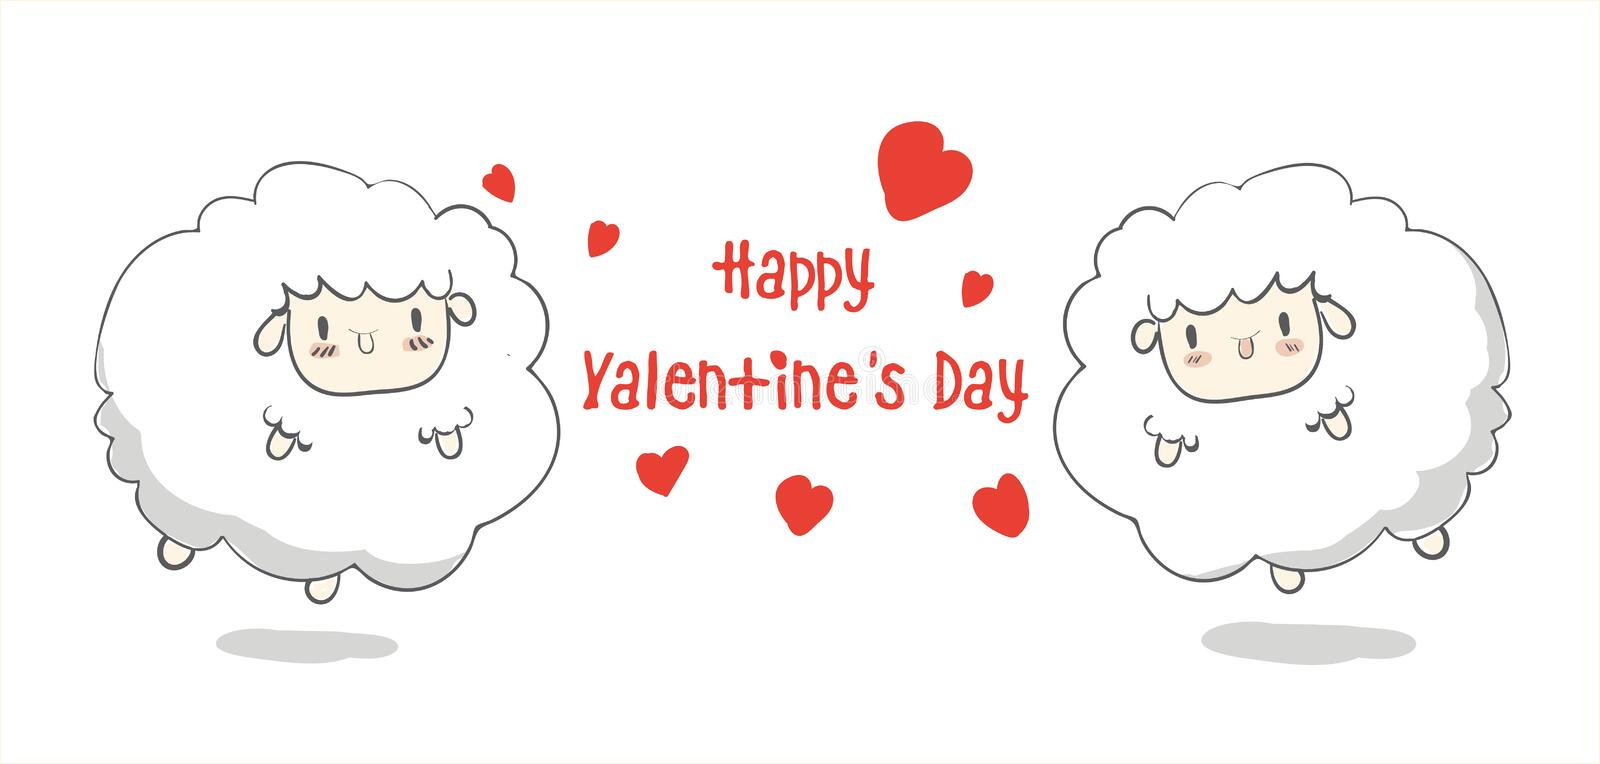 Happy Valentine`s Day,cute cartoon,sheep, greeting card greeting card with heart creative hand drawn card vector,elements,love,. Flyers, invitation, posters royalty free illustration